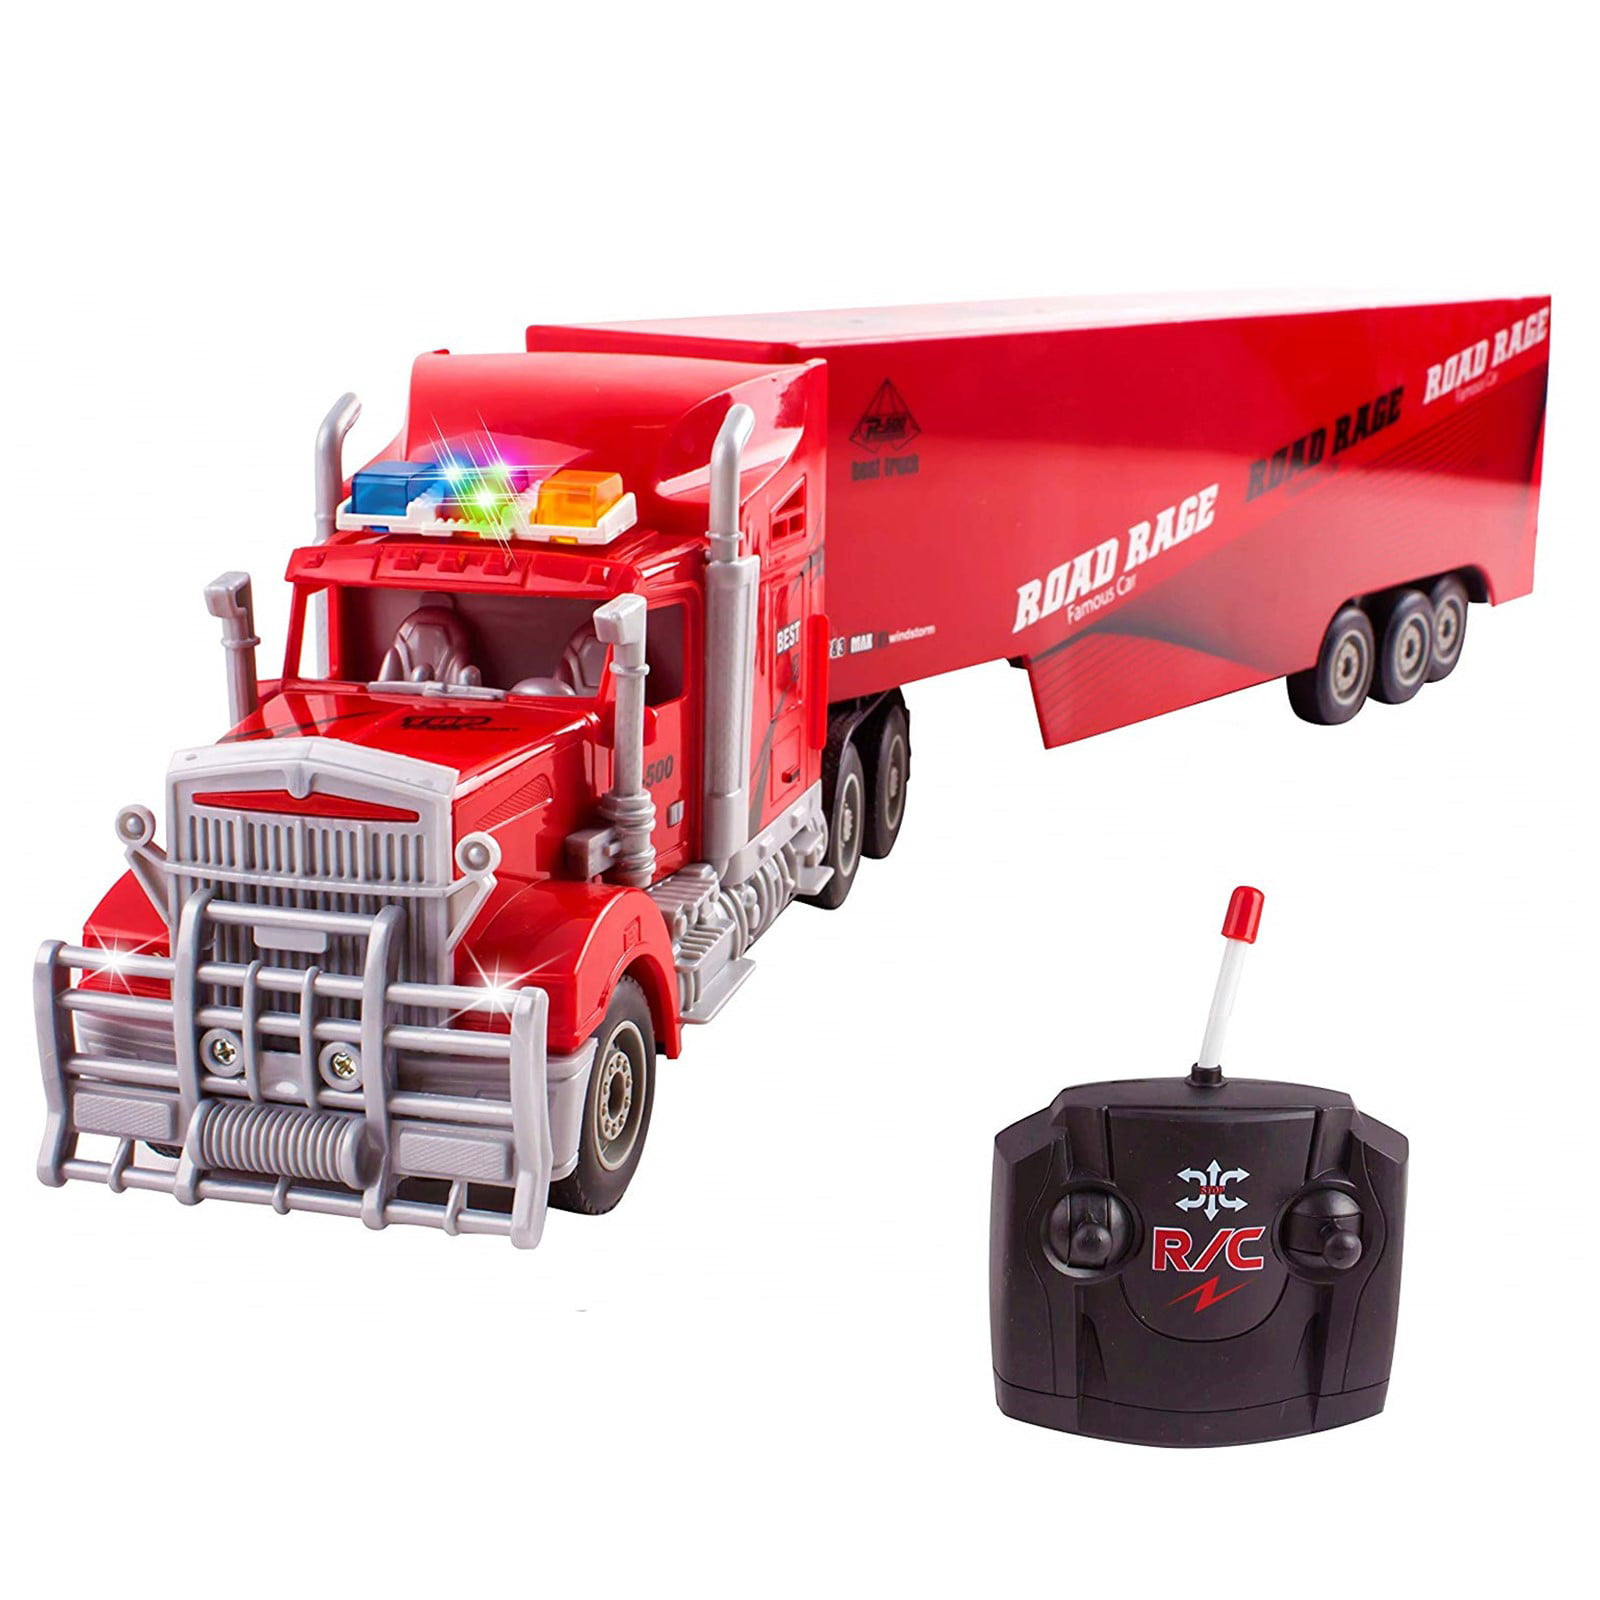 Vokodo Rc Semi Truck And Trailer 23 With Lights Electric Hauler Remote Control Kids Big Rig Toy Carrier Van Transport Vehicle Ready To Run Semi Truck Cargo Car Great Gift For Children Boys